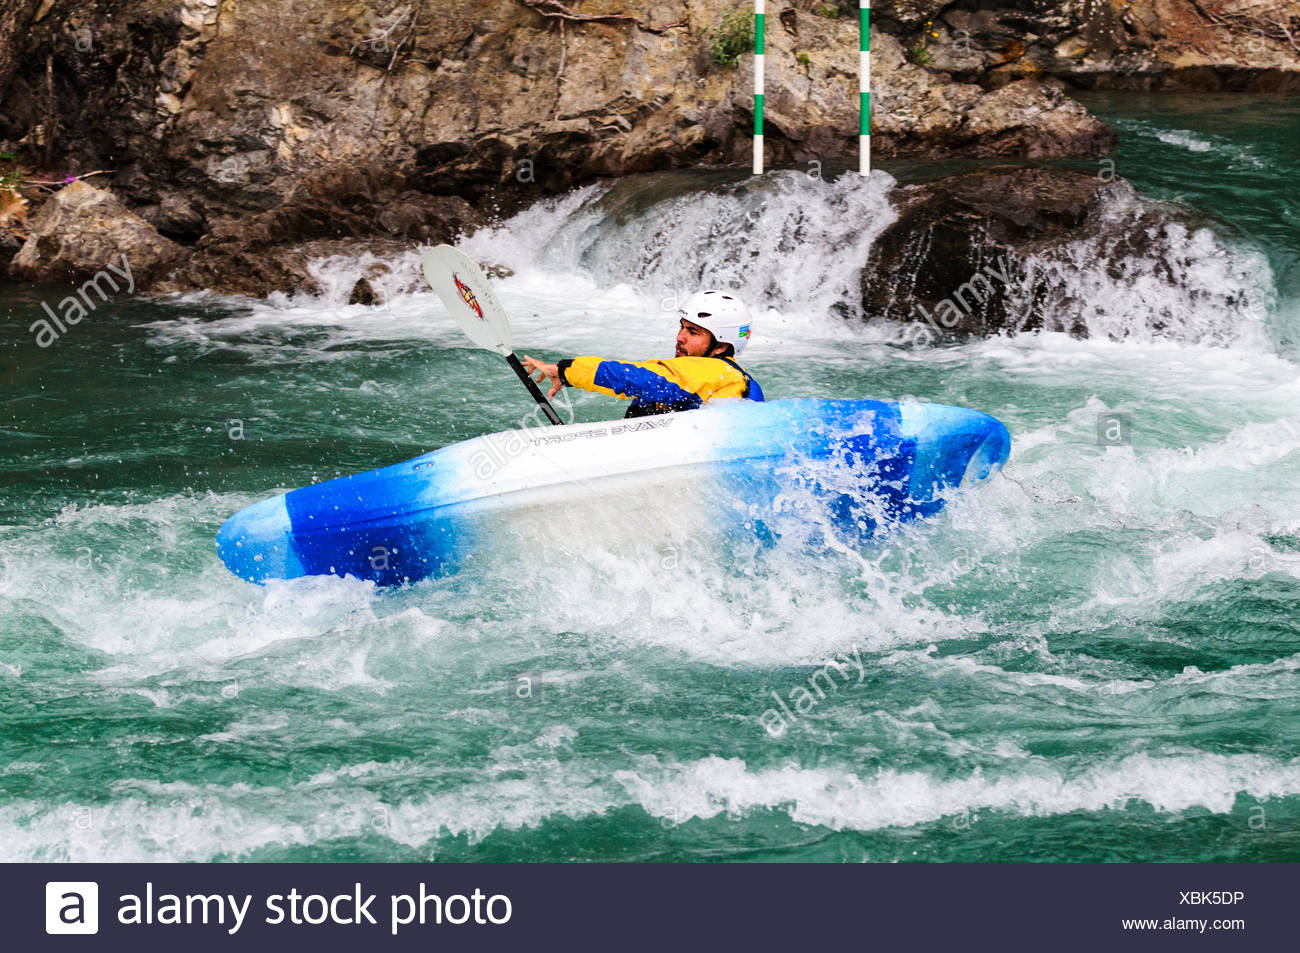 A slalom kayaker tries to stabilize his kayak while navigating the Kananaskis River at the Canoe Meadows course in Alberta. - Stock Image